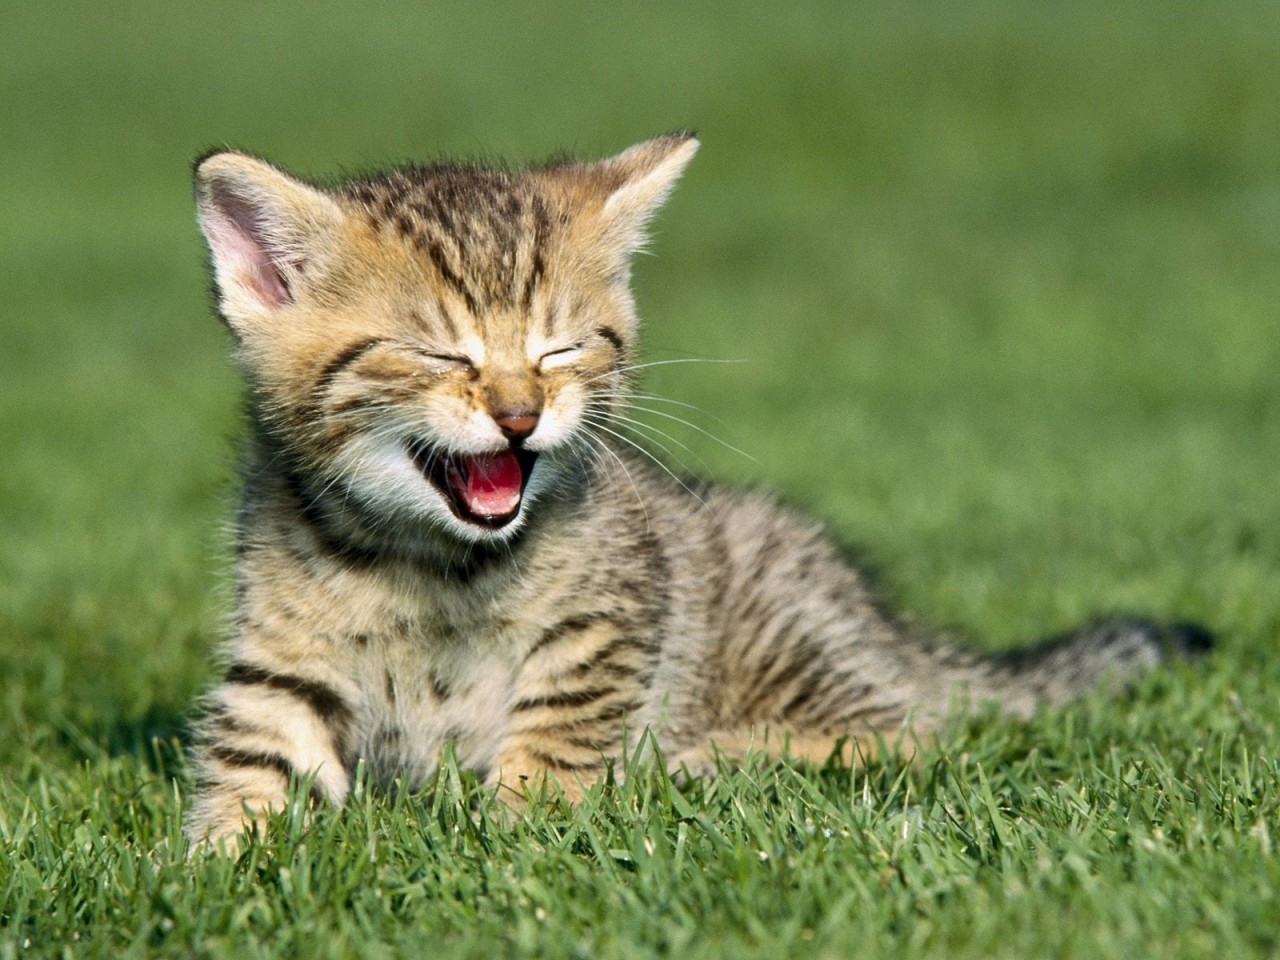 Yawning Cat Wallpaper Hd Wallpapers